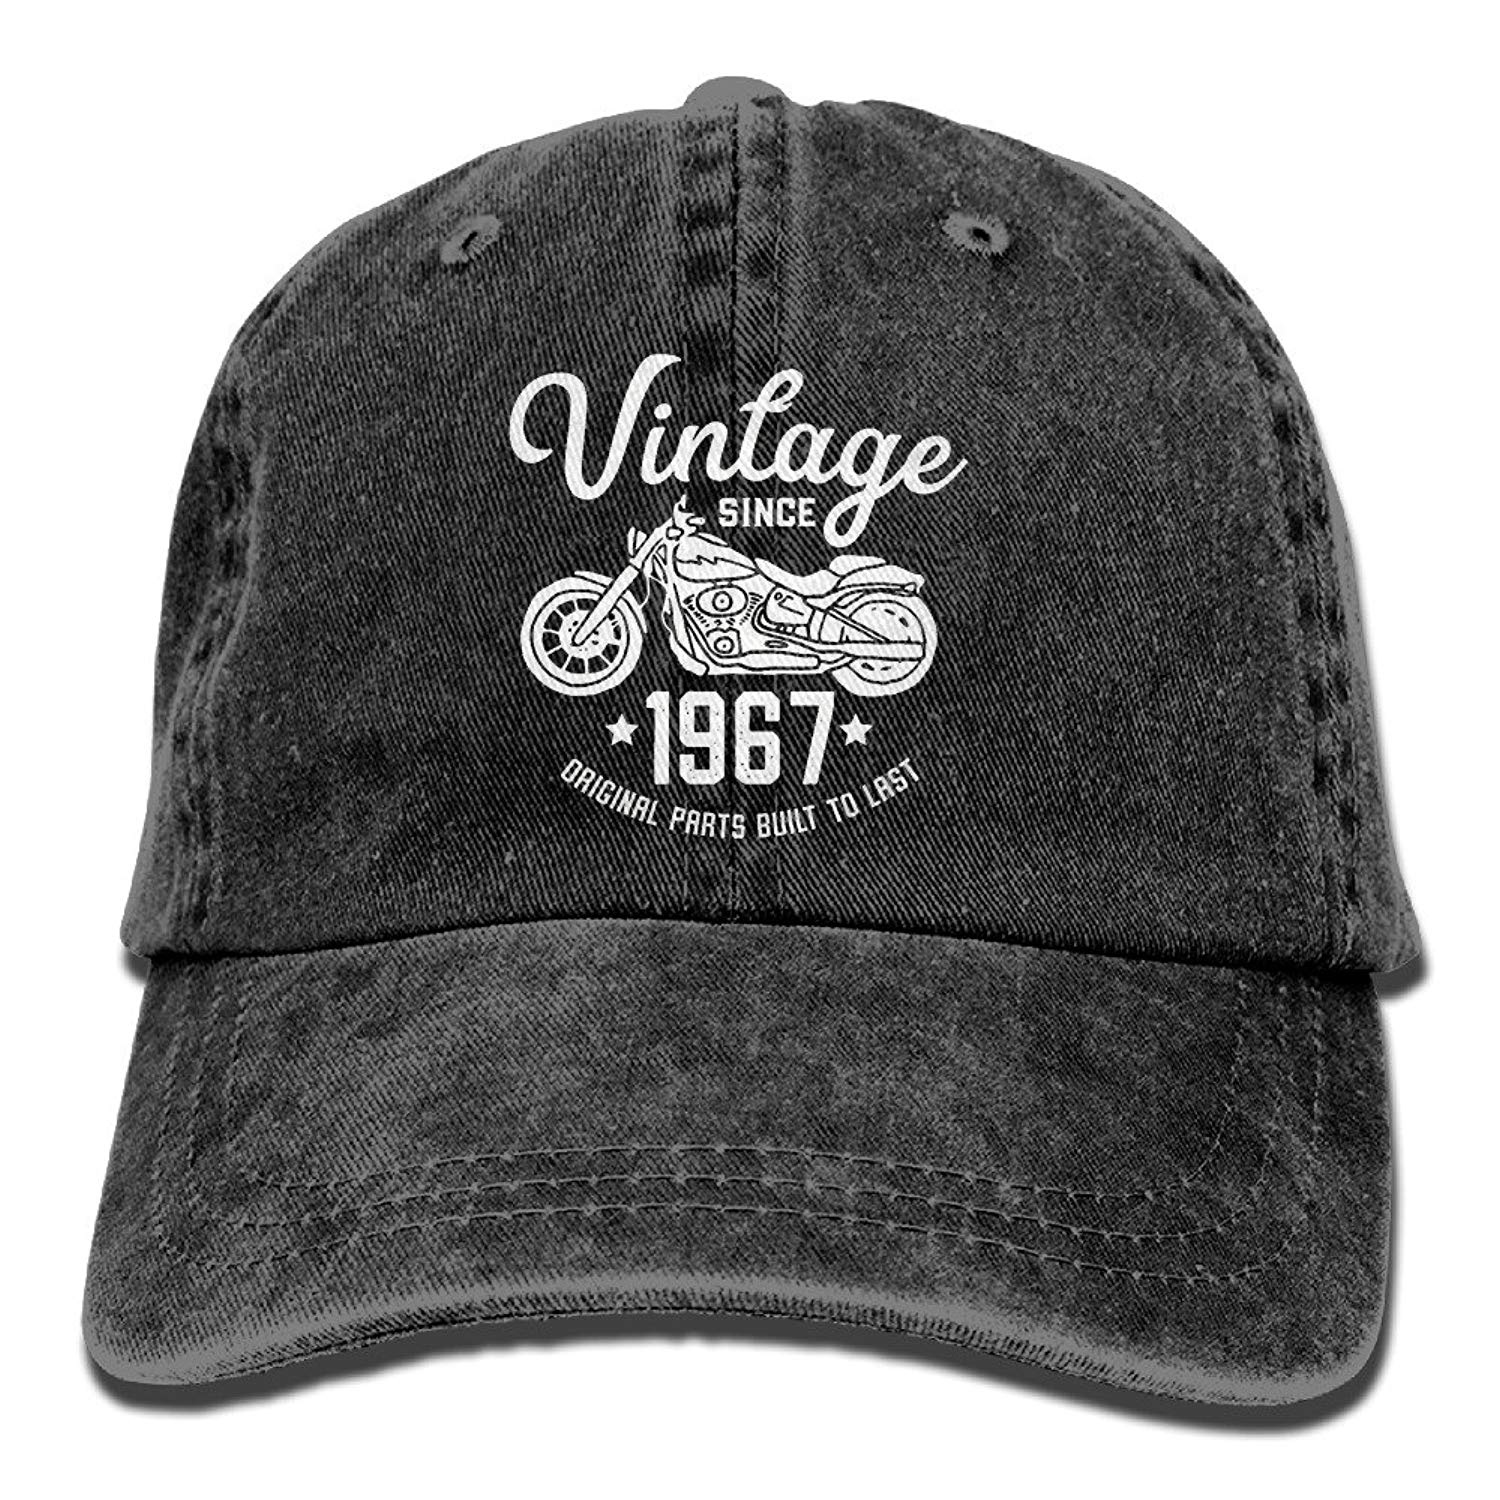 1c2bd806ddc Get Quotations · Adult Vintage Washed Dyed Cotton Adjustable Denim Baseball  Cap 50th Birthday Vintage Retro Motorcycle 1967 Rider